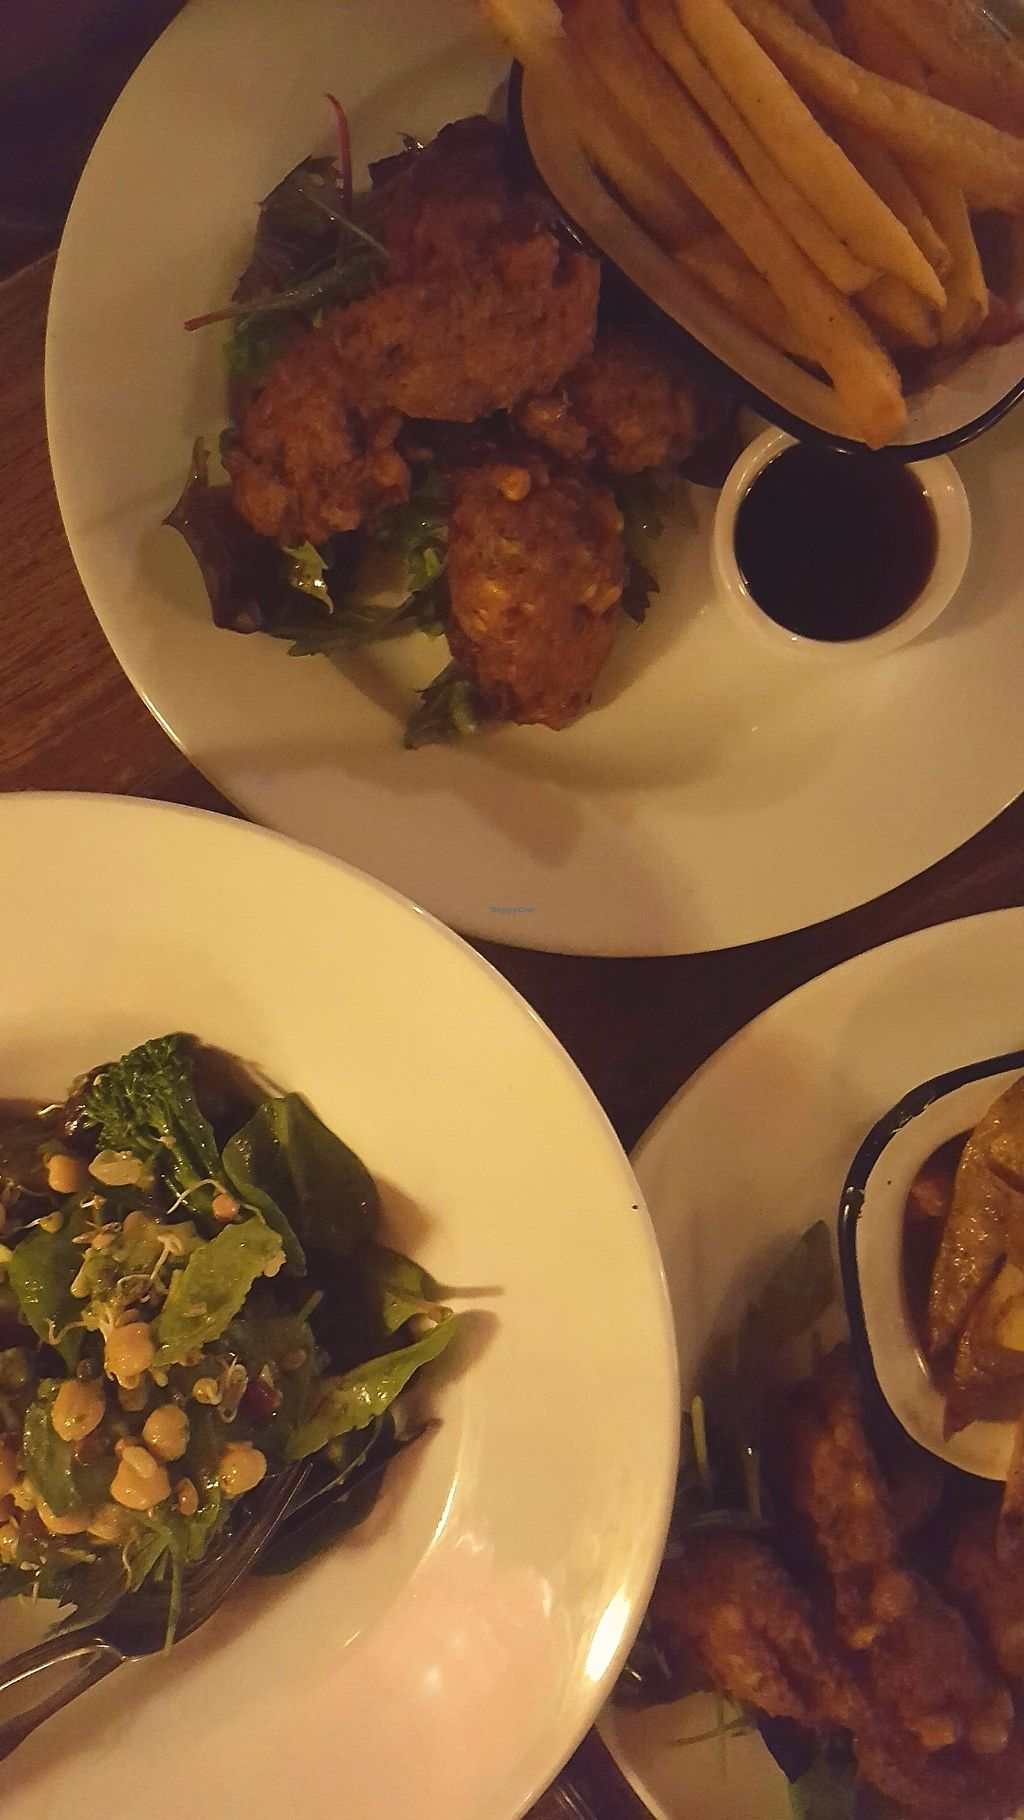 """Photo of Kings Arms  by <a href=""""/members/profile/VeganAnnaS"""">VeganAnnaS</a> <br/>Chickpea, sweetcorn and courgette fritters and the avocado and tenderstem broccoli salad  <br/> October 14, 2017  - <a href='/contact/abuse/image/102934/315207'>Report</a>"""